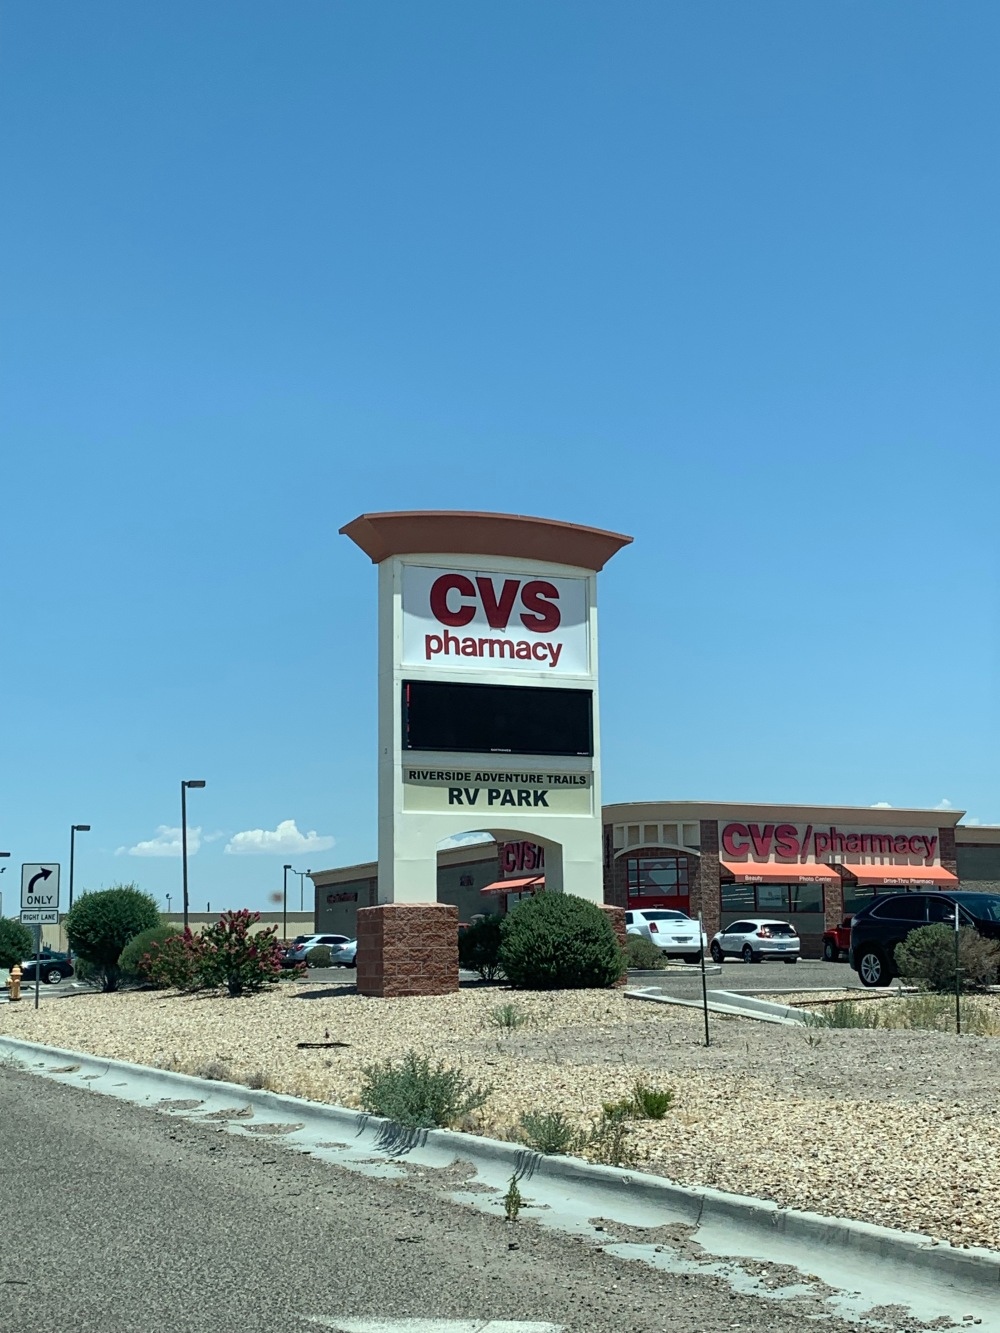 01-entrance at CVS